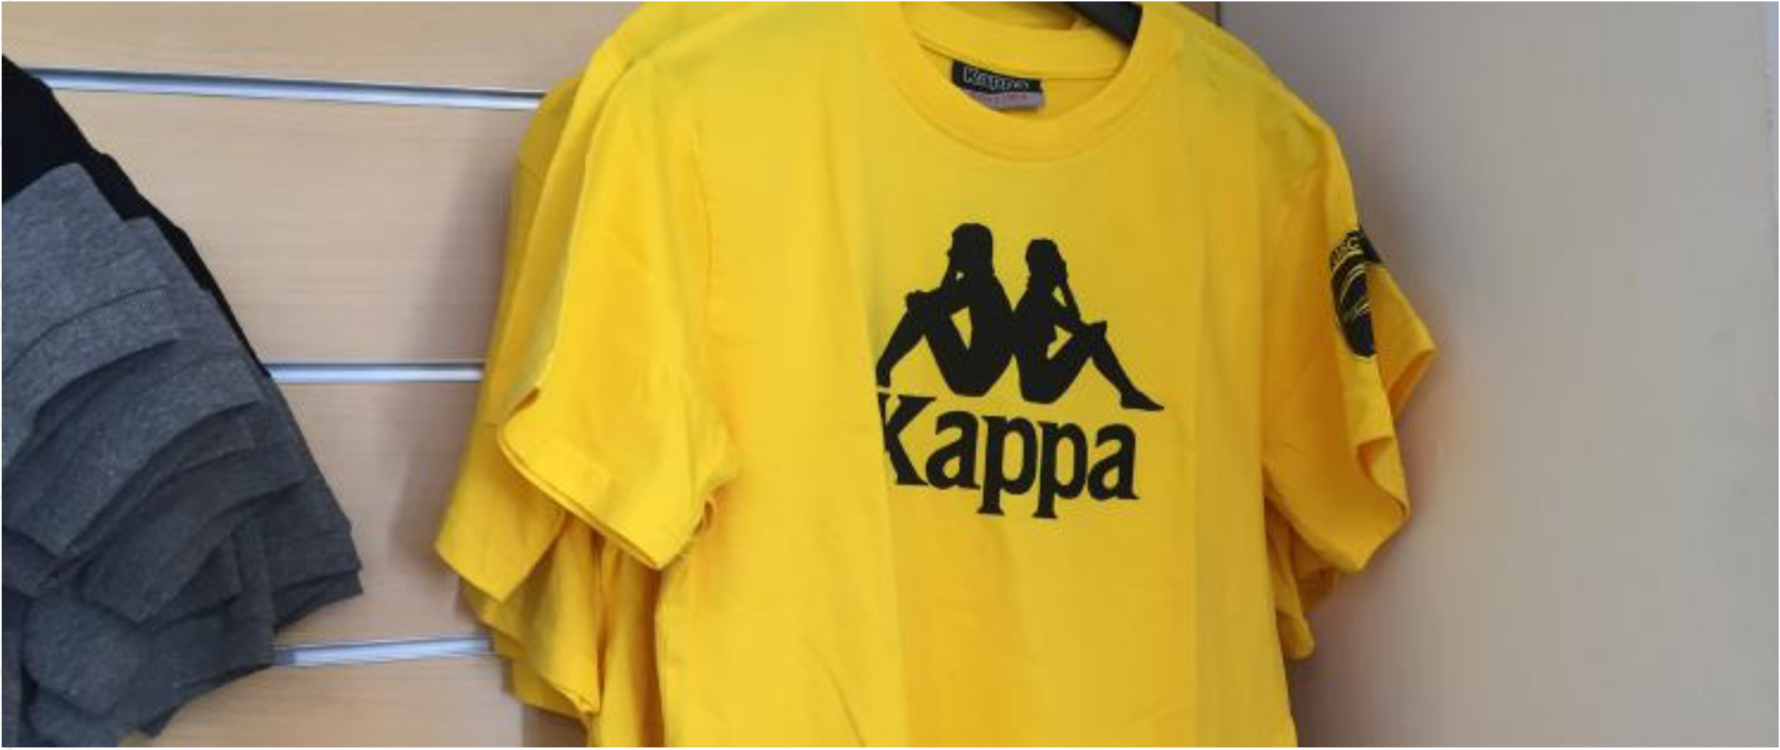 Tee-shirt supporters